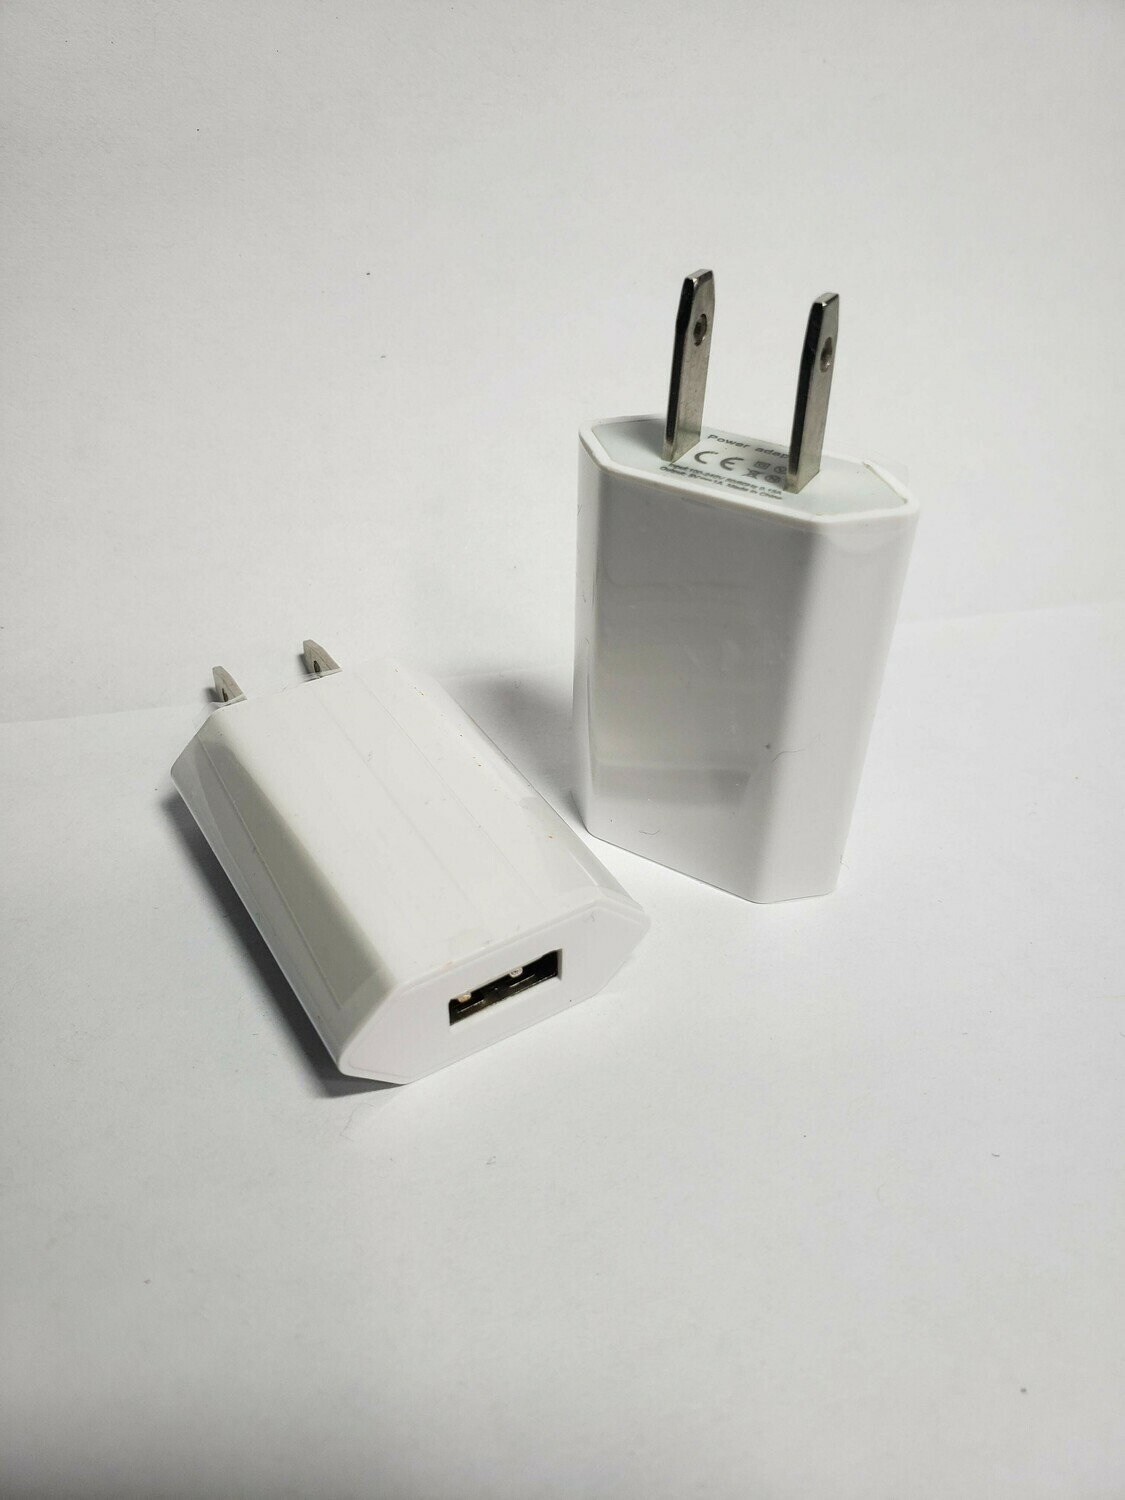 USB/CHARGERS